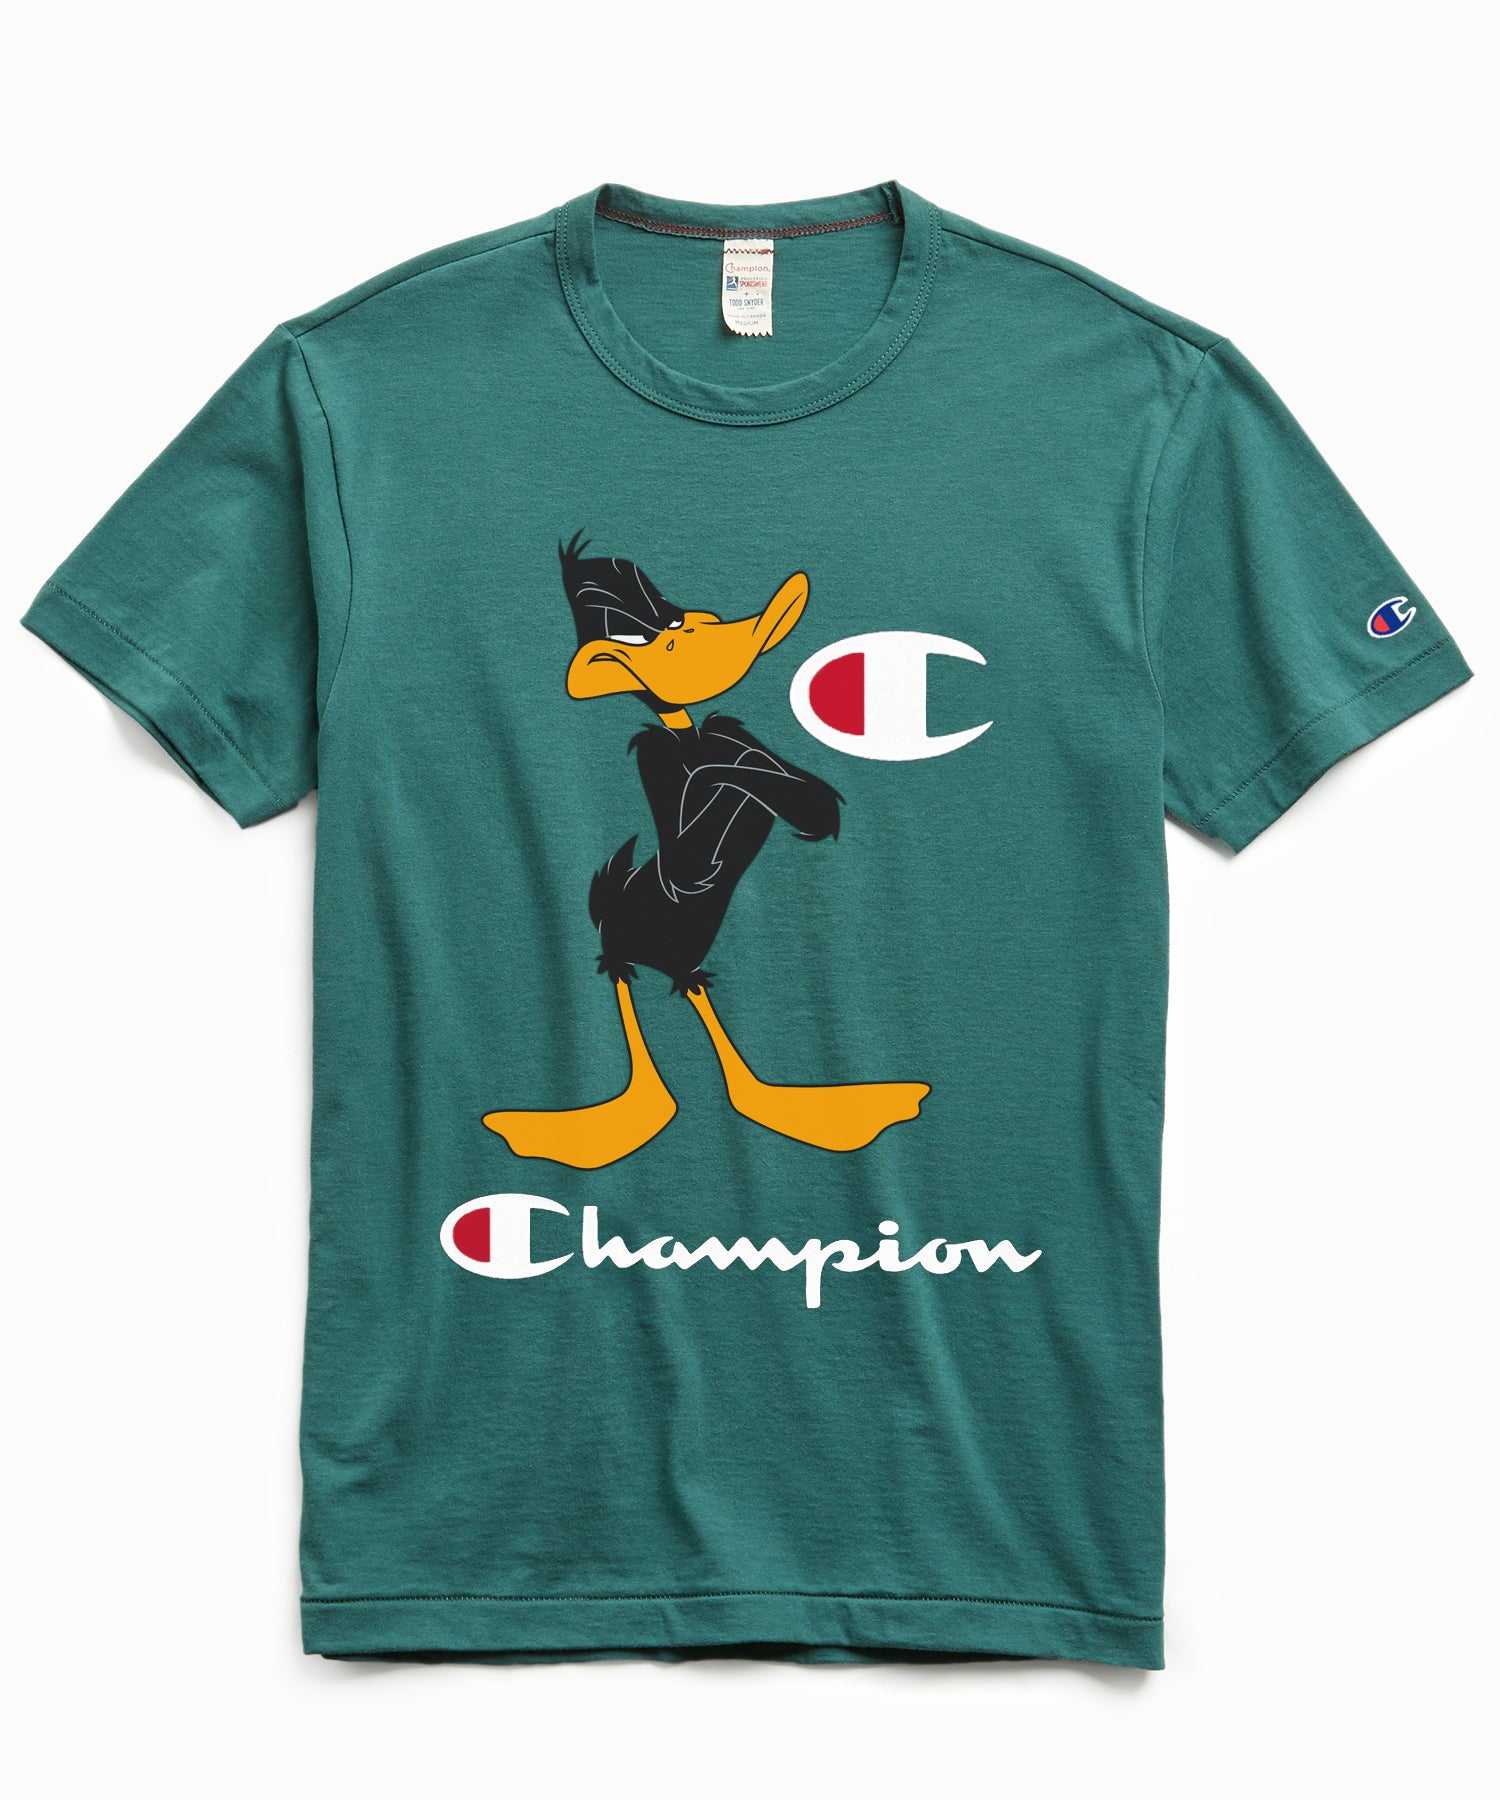 Champion + Looney Tunes Daffy Duck Tee in Storm Green